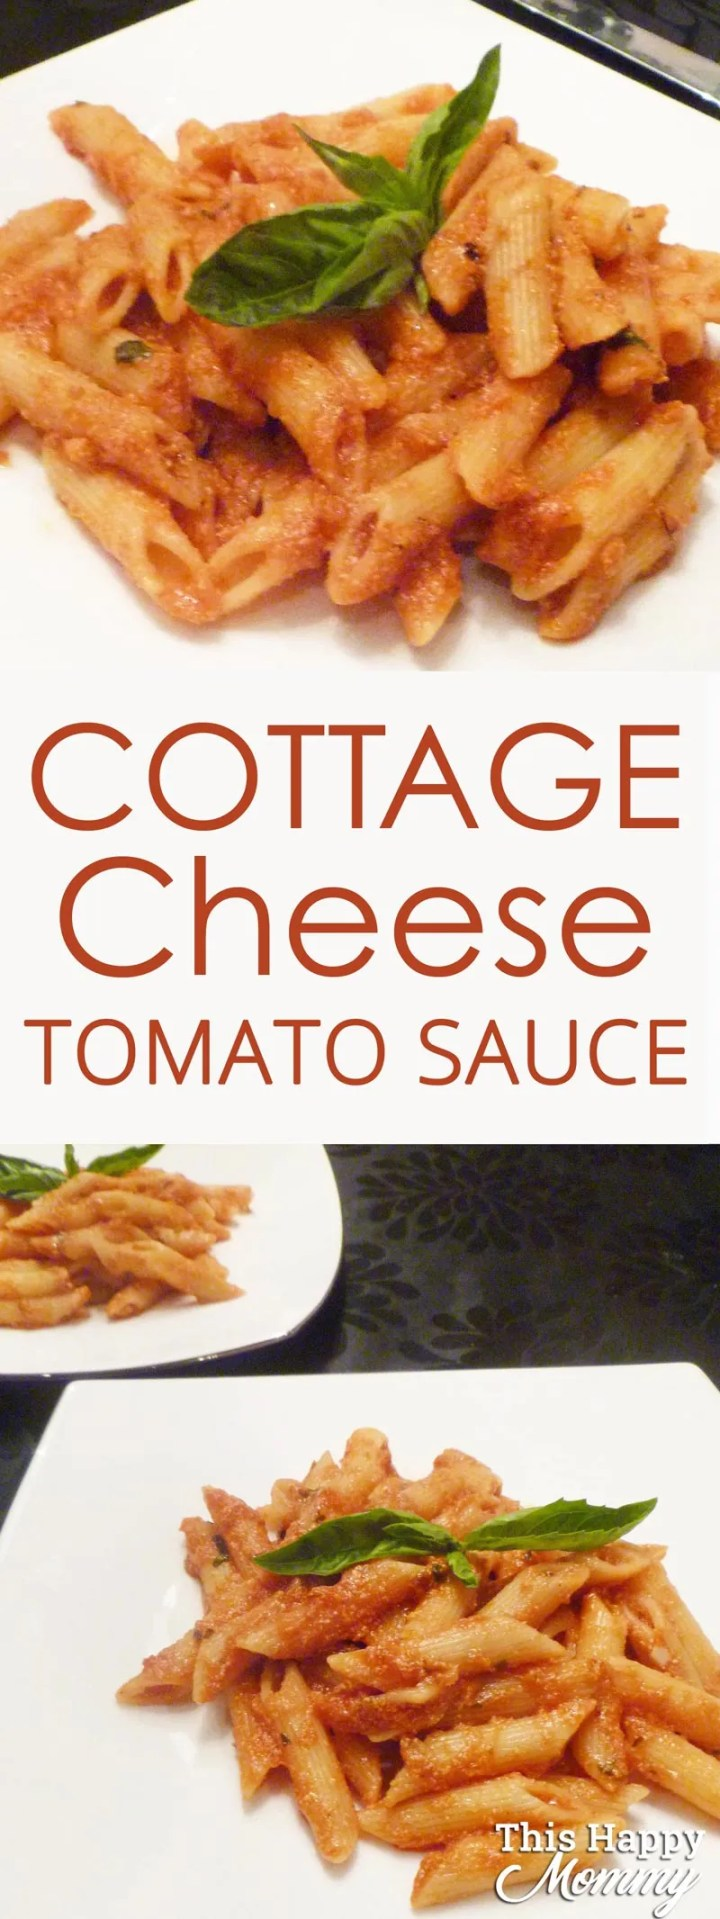 Looking for a healthy pasta sauce? Cottage Cheese Tomato Sauce is a rich and creamy tomato sauce with a hint of cheesy flavour. Plus, it's ready in only 20 minutes. #healthypastarecipe #easypastarecipe #healthy20minutemeal #quickandeasydinner #tomatosaucepastarecipe | thishappymommy.com